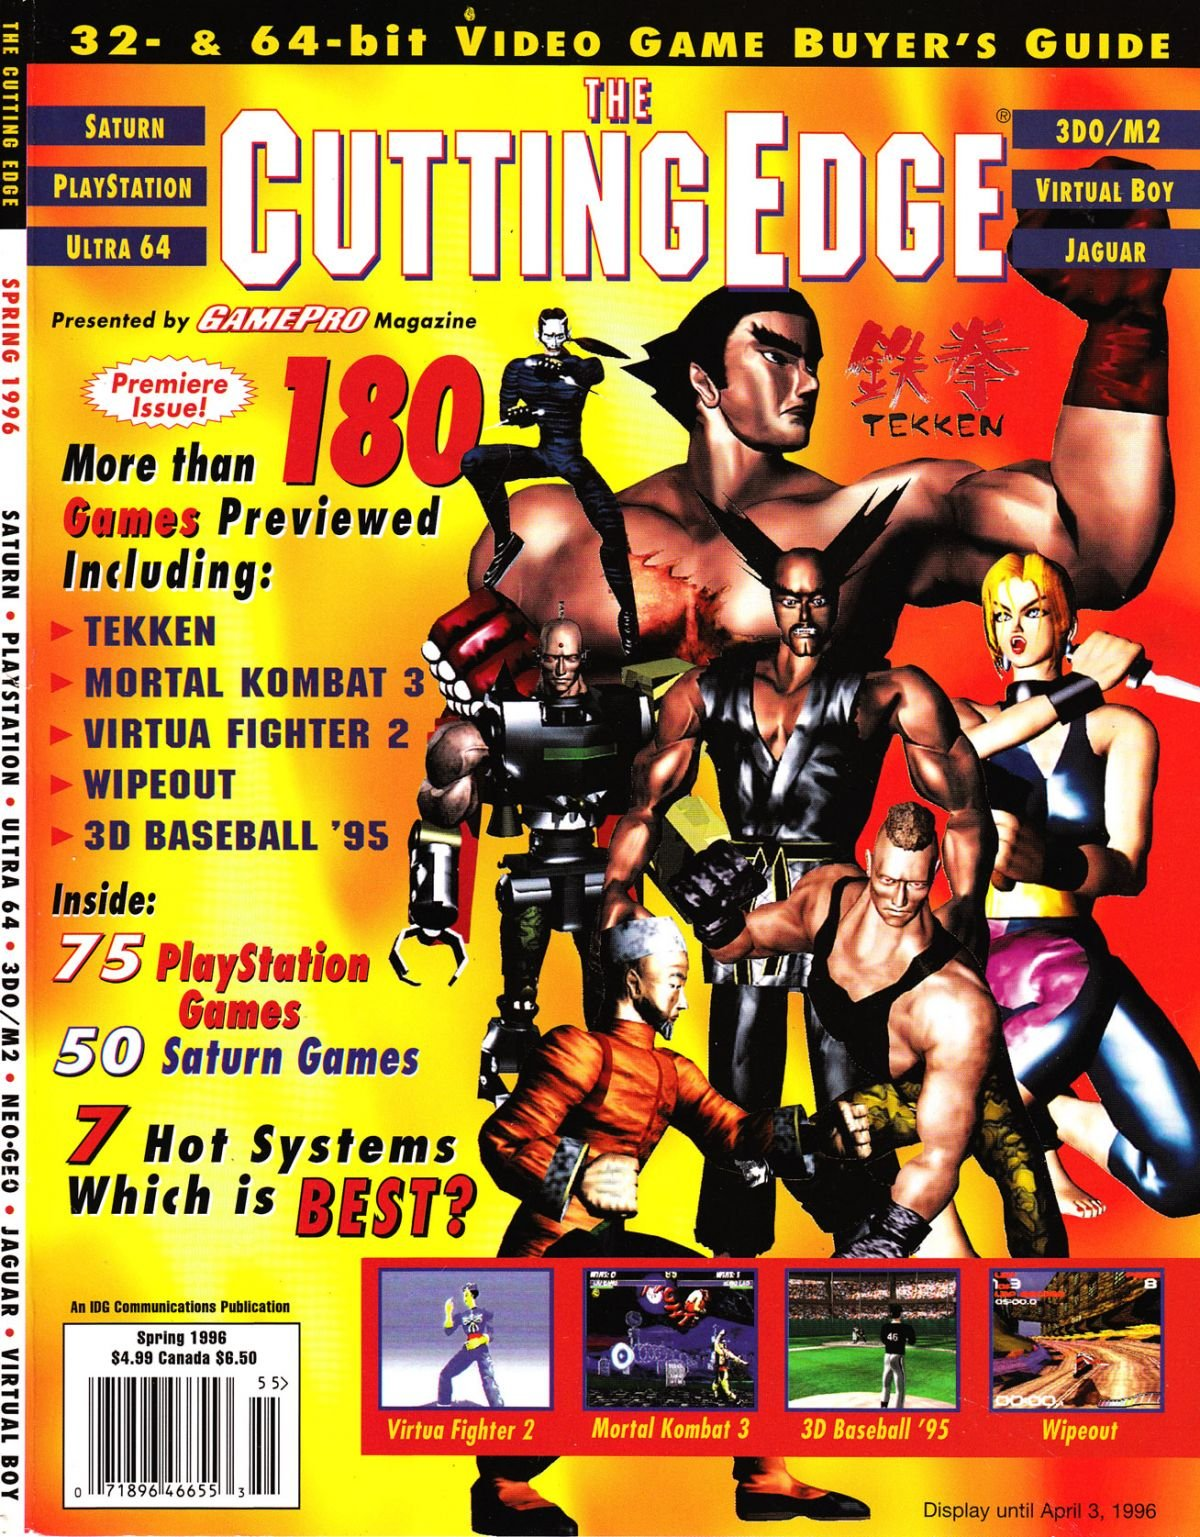 The Cutting Edge Spring 1996